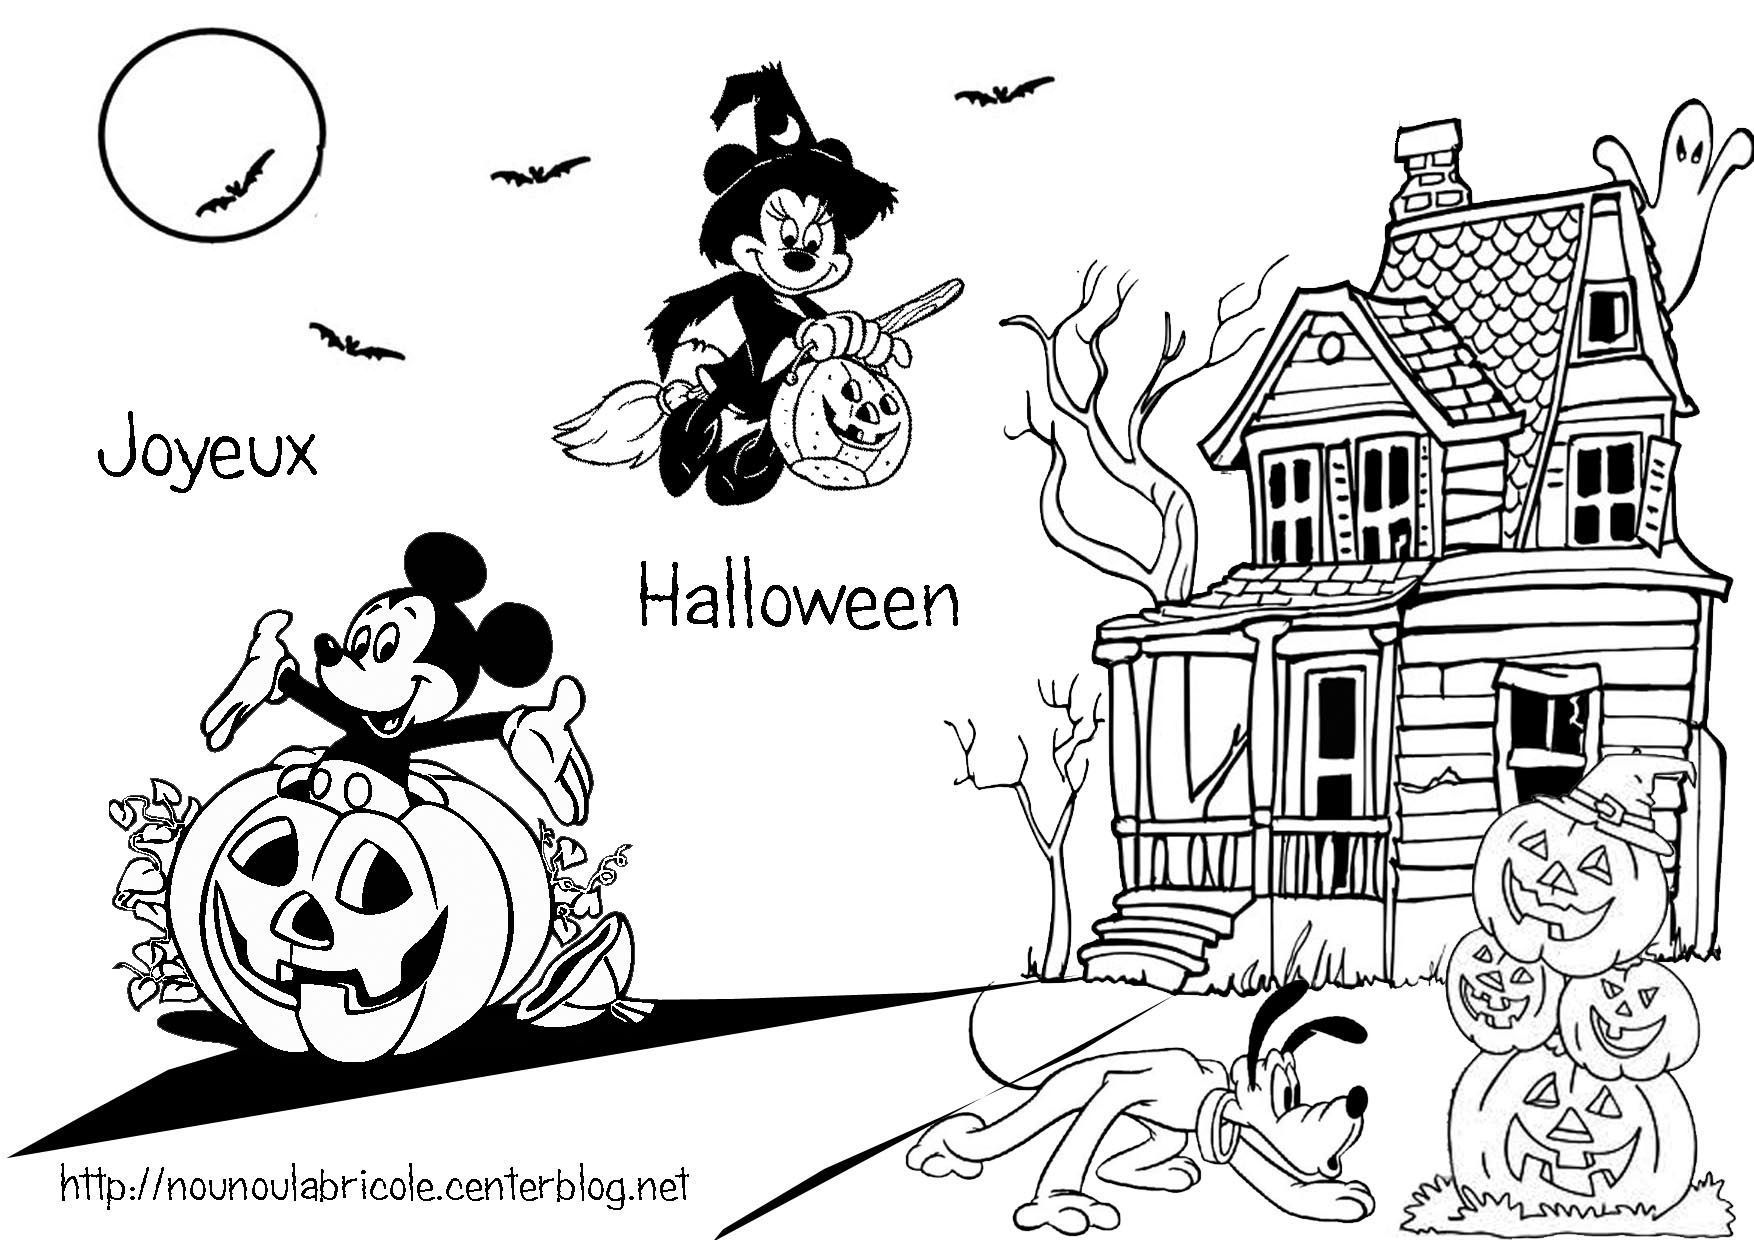 Coloriage halloween - Dessins a colorier gratuit ...